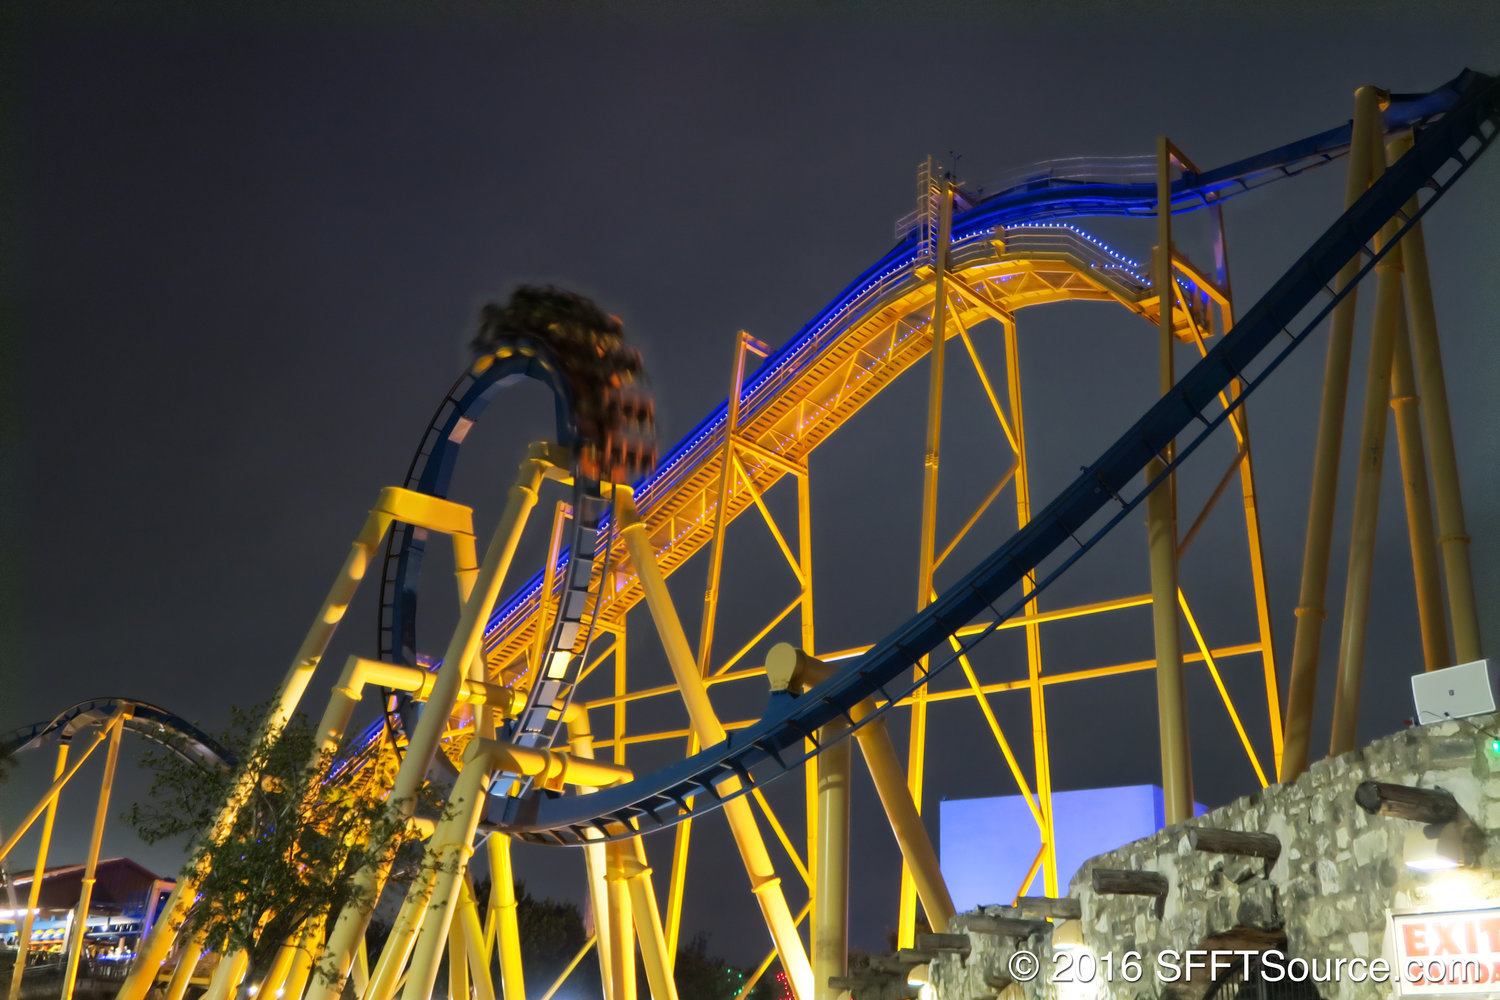 Goliath    is a mirrored version of Batman: The Ride at Fiesta Texas in San Antonio.